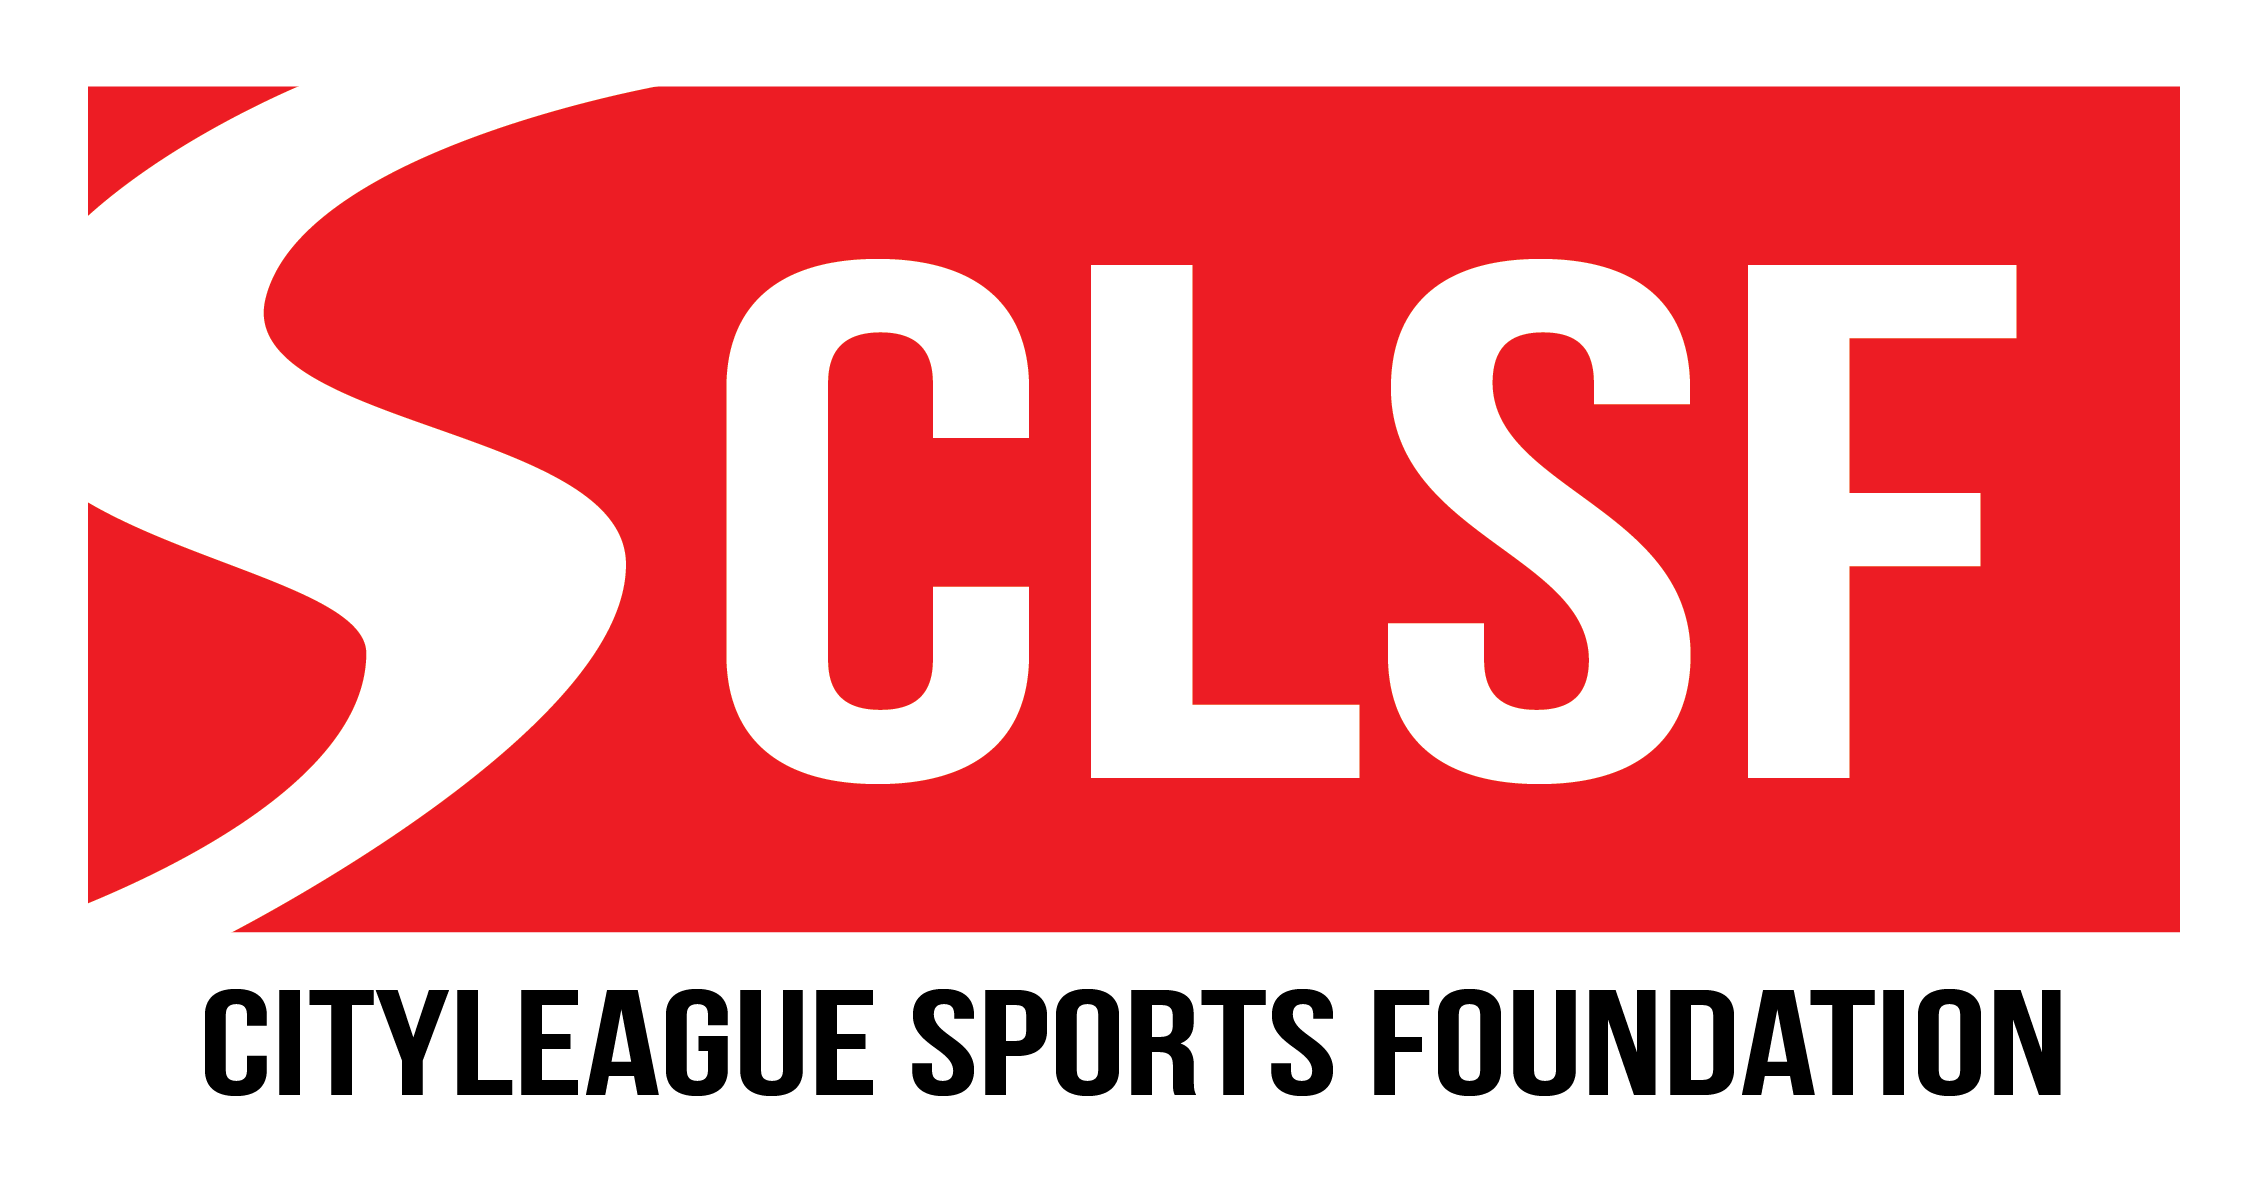 CLSF